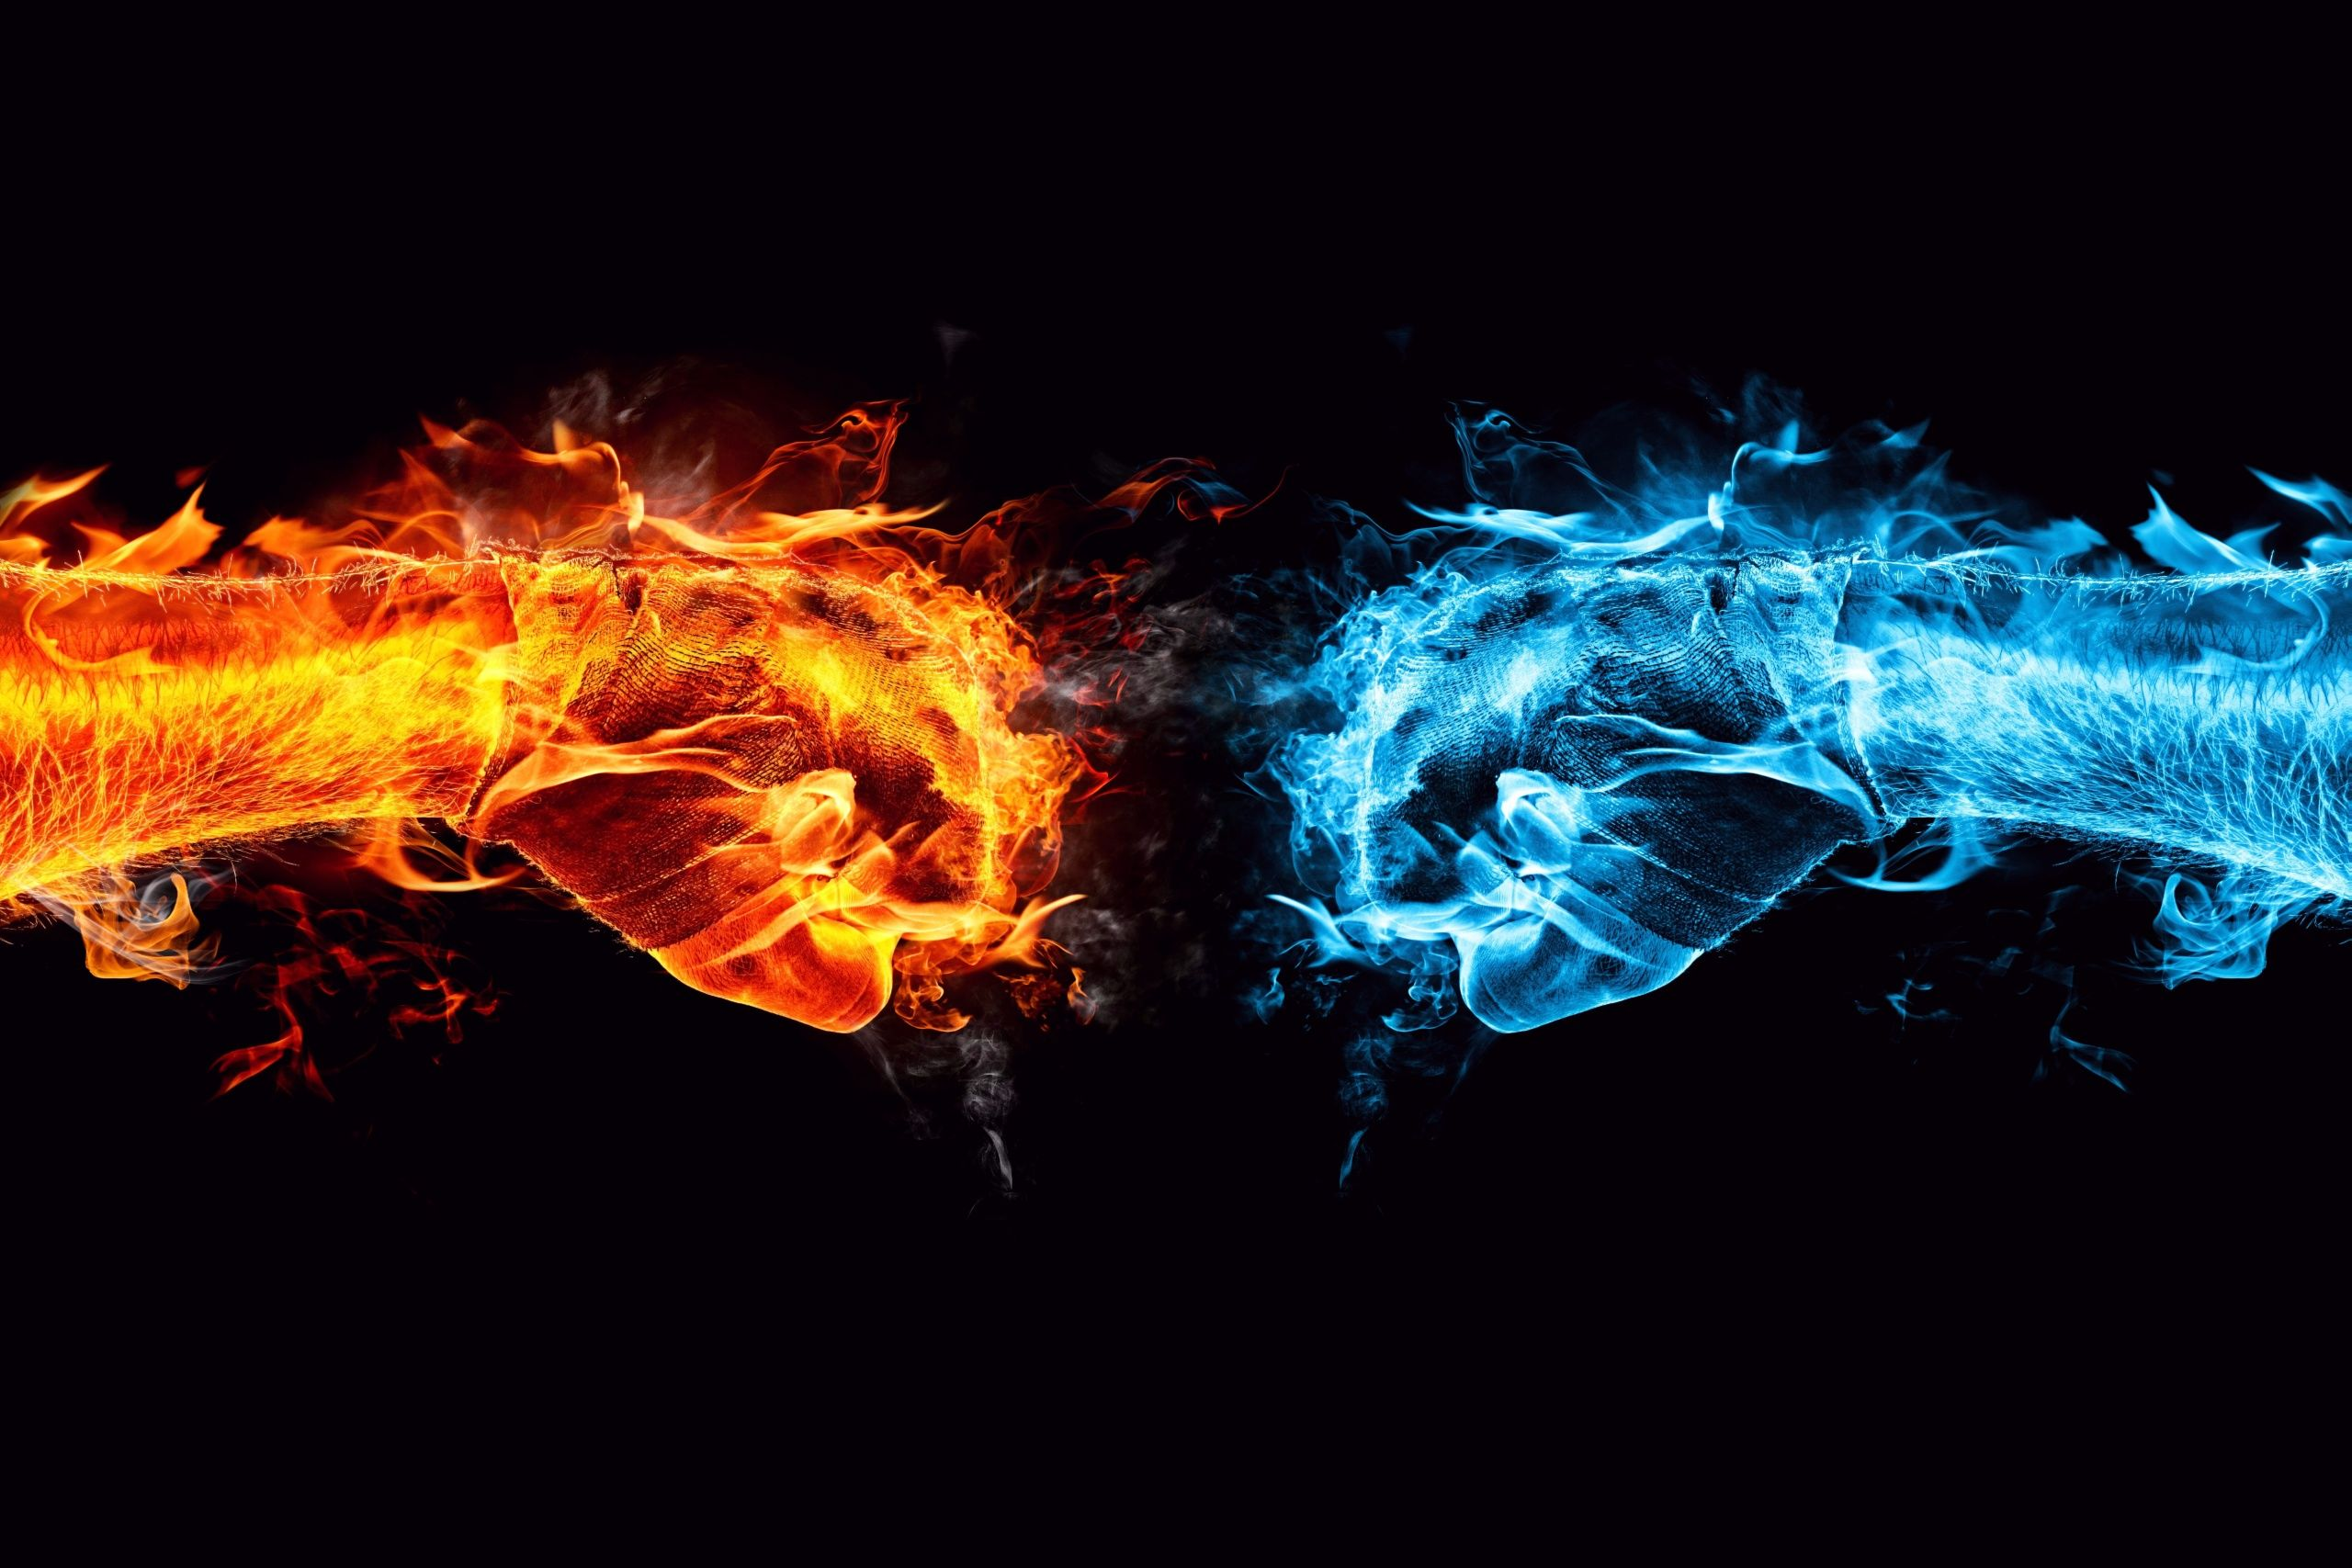 Fist Fight Fire And Water Hands Wallpaper For Desktop Cool